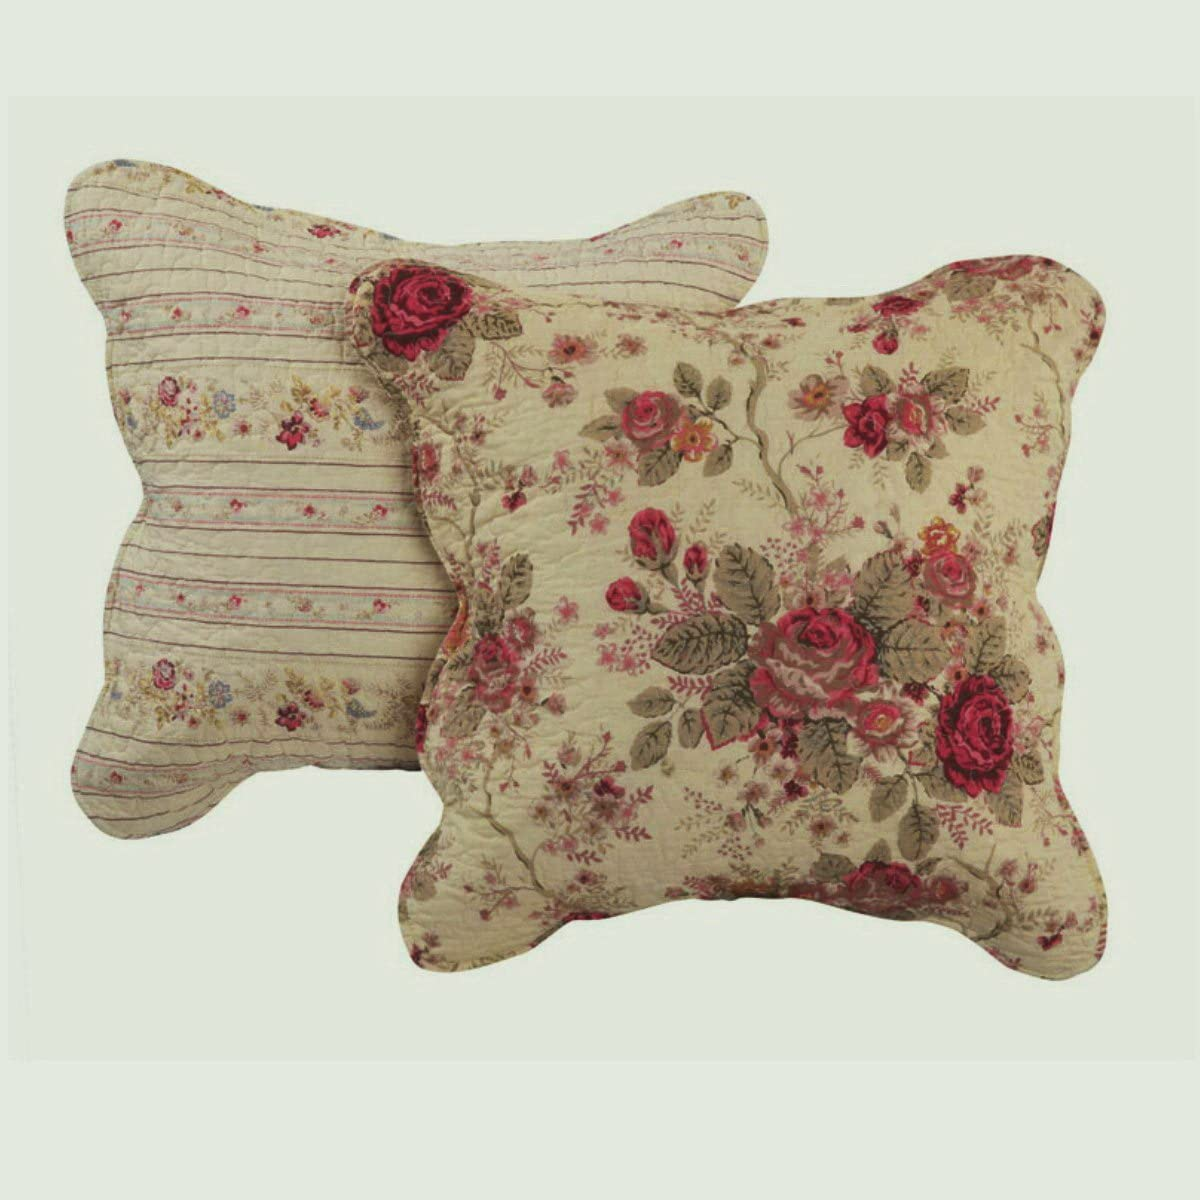 Finely Stitched Cottage Romantic Floral Roses Print Pattern Cream Yellow Decorative Accent Throw Pillows Set Pair 2